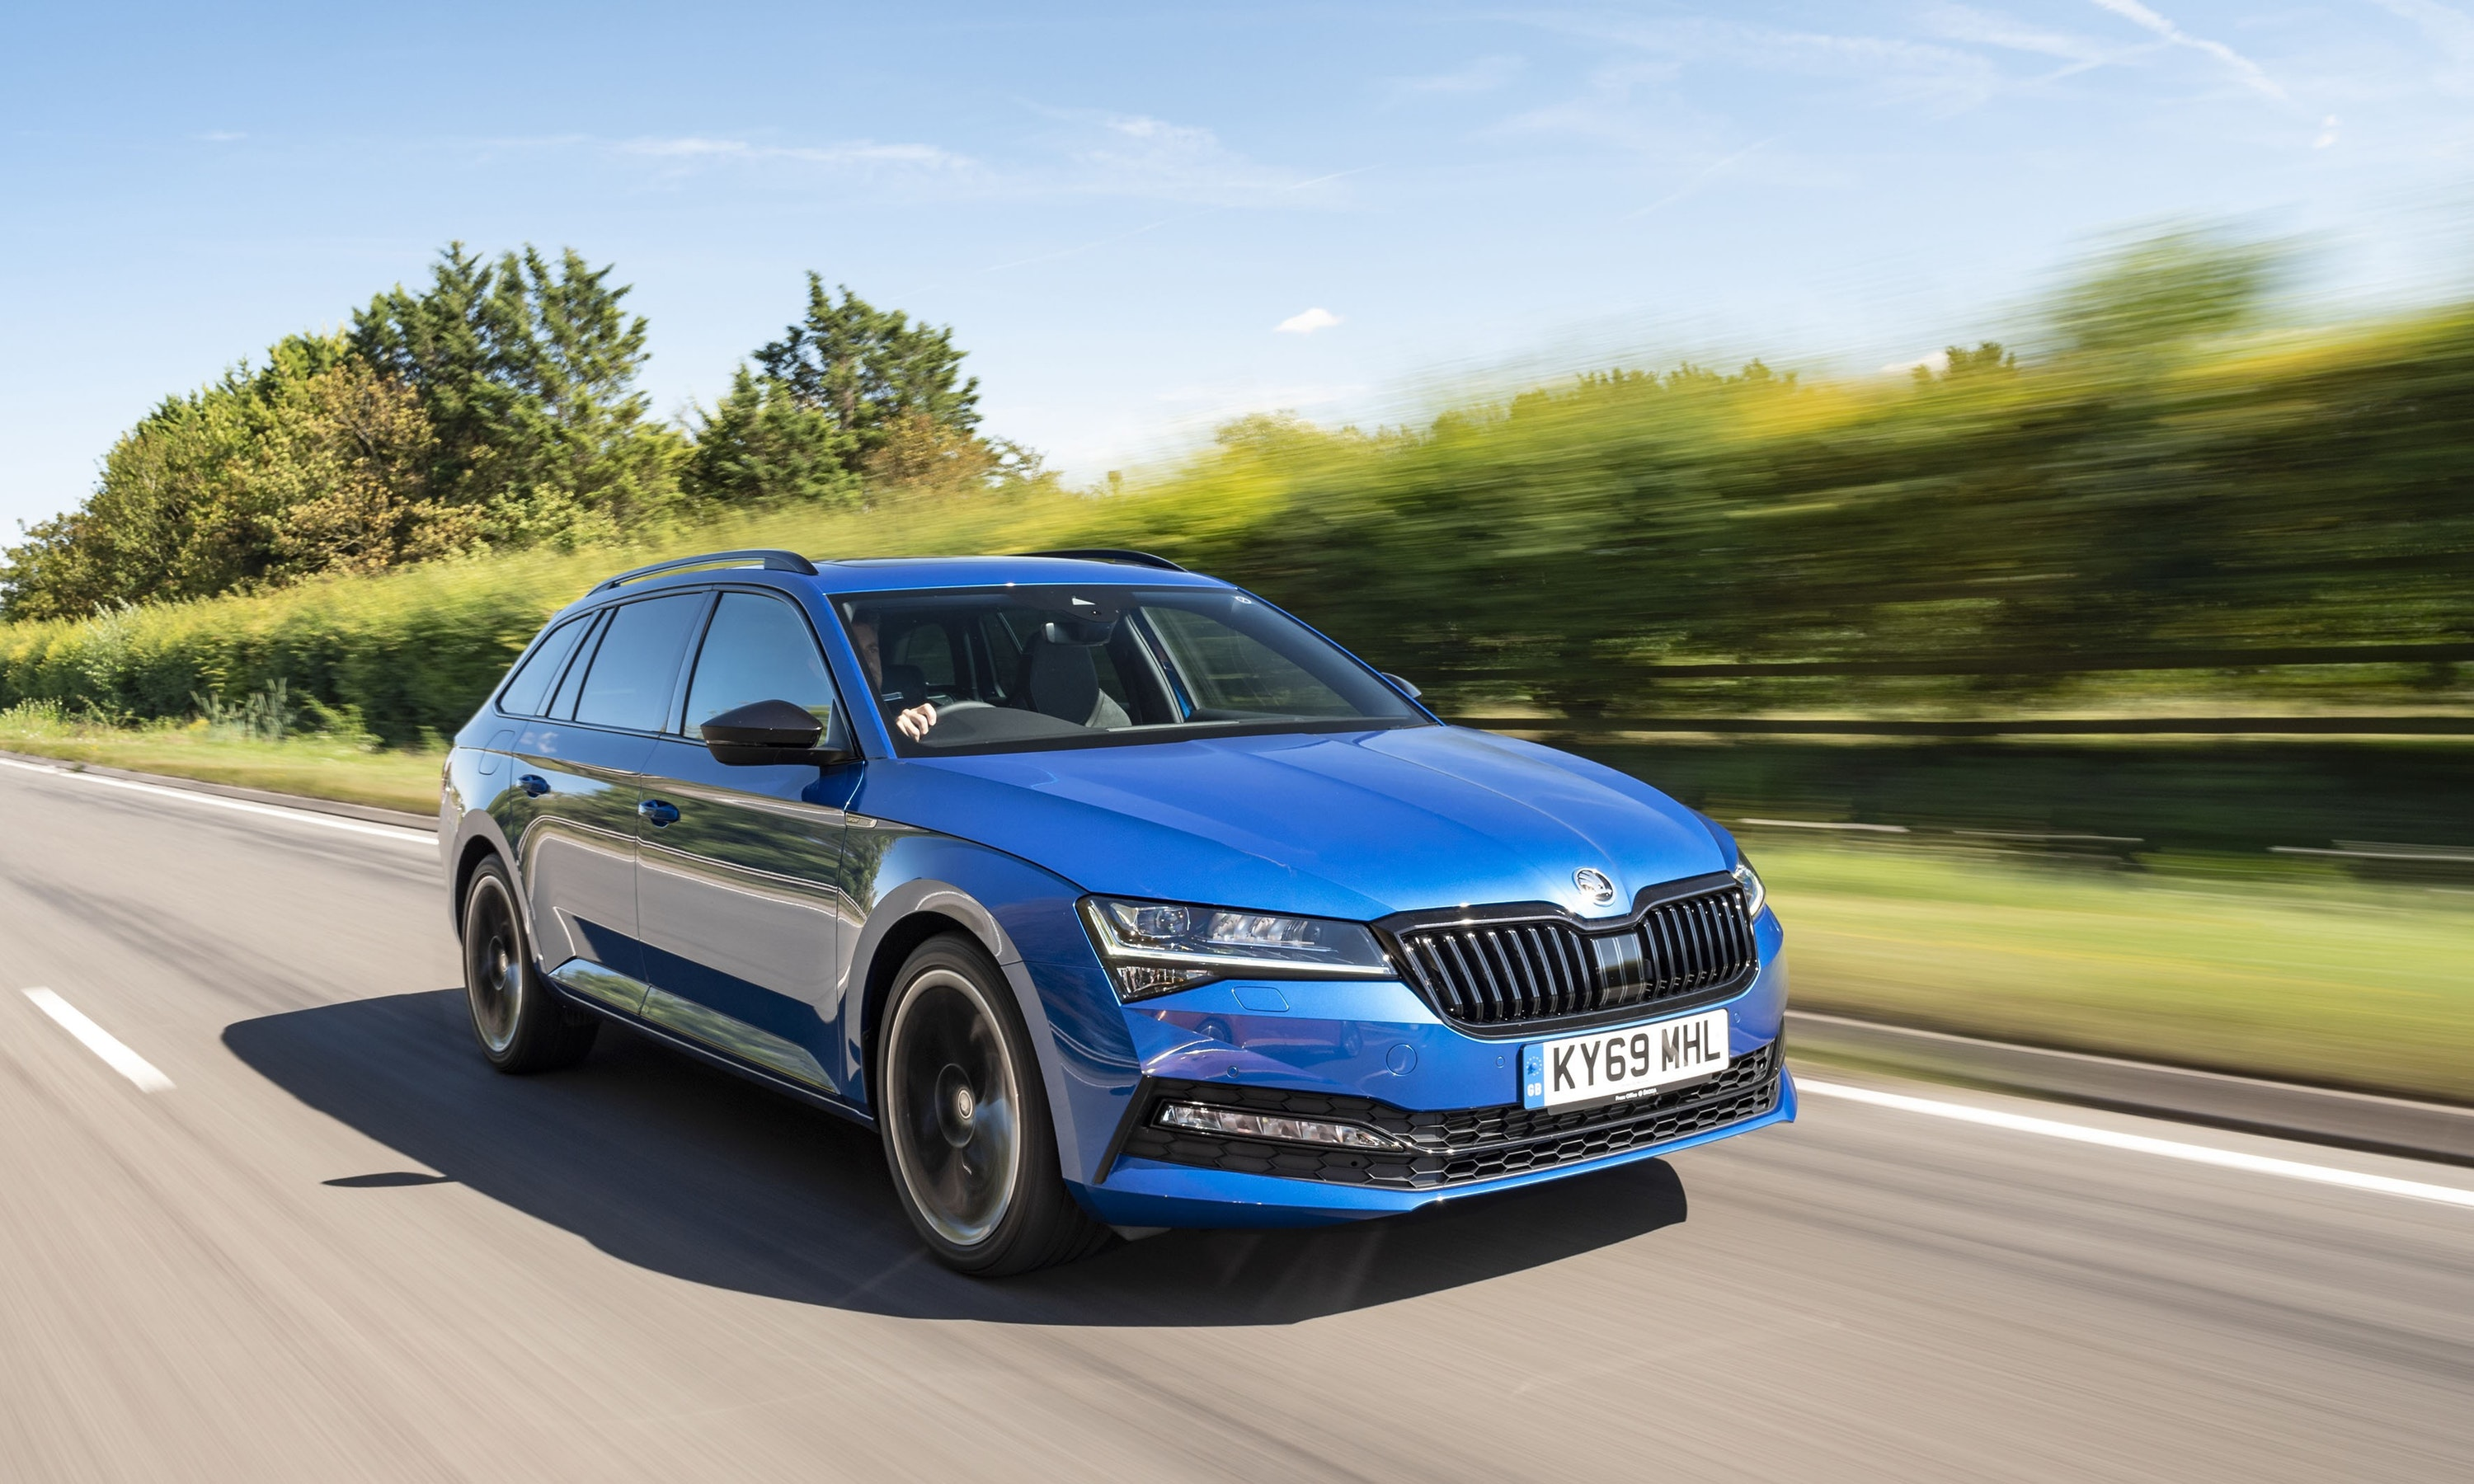 Skoda Superb driving on a road